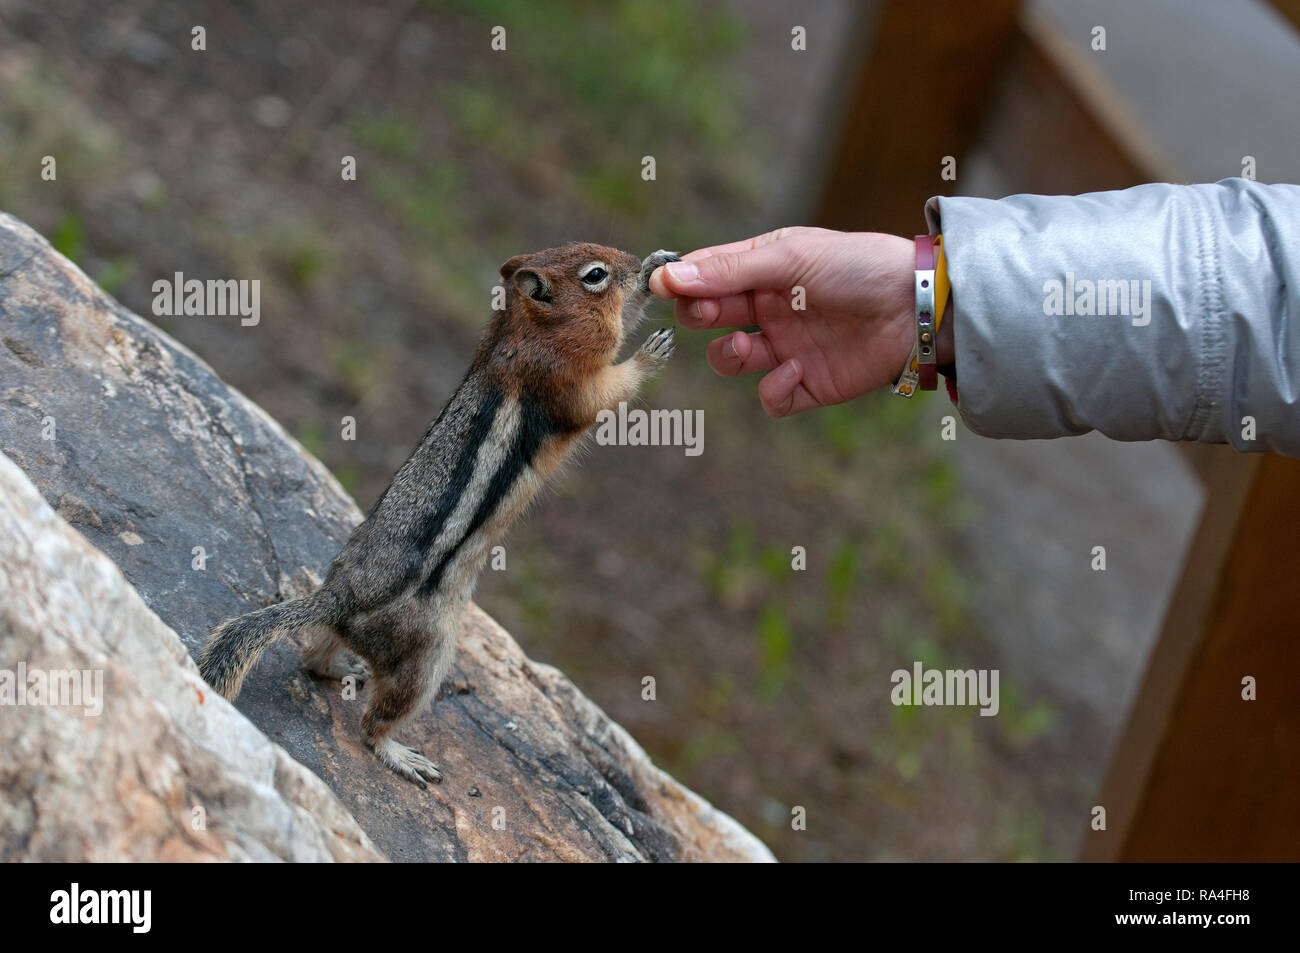 Golden-mantled Ground Squirrel (Spermophilus lateralis) touching a girl's hand, Banff National Park, Rocky Mountains, Alberta, Canada - Stock Image